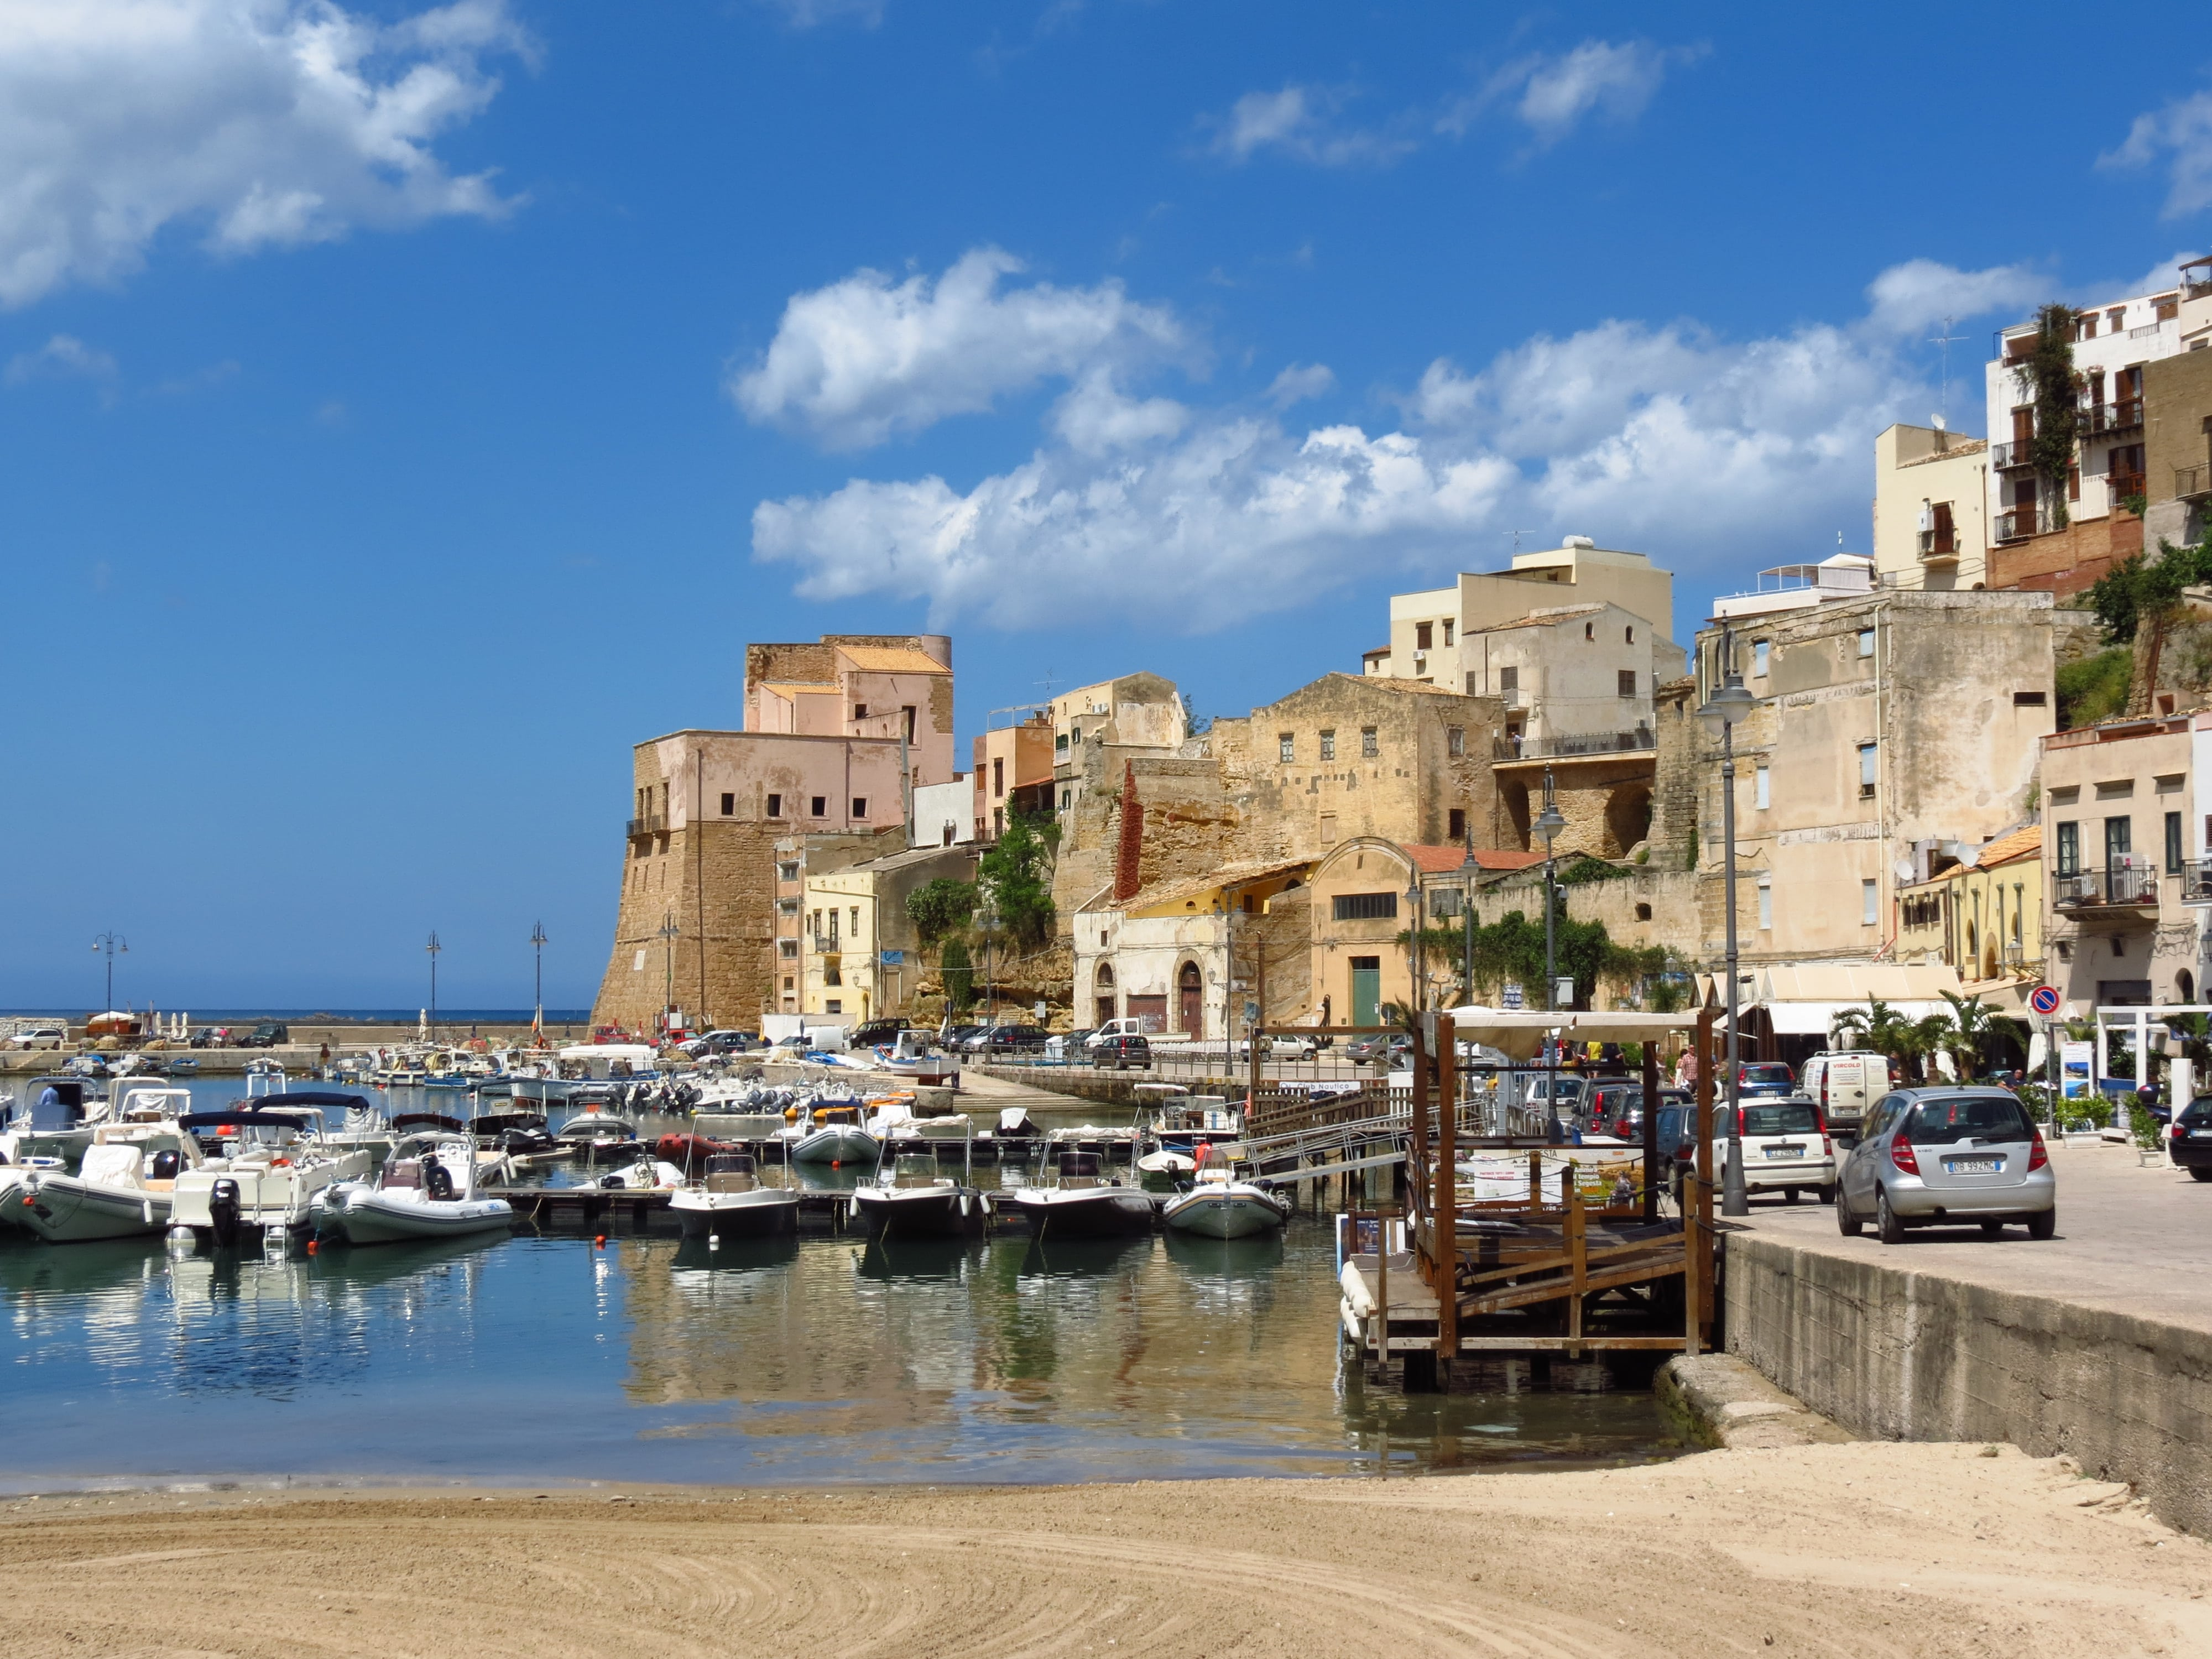 Where to stay for a beautiful beaches and awesome ruins? Sicily